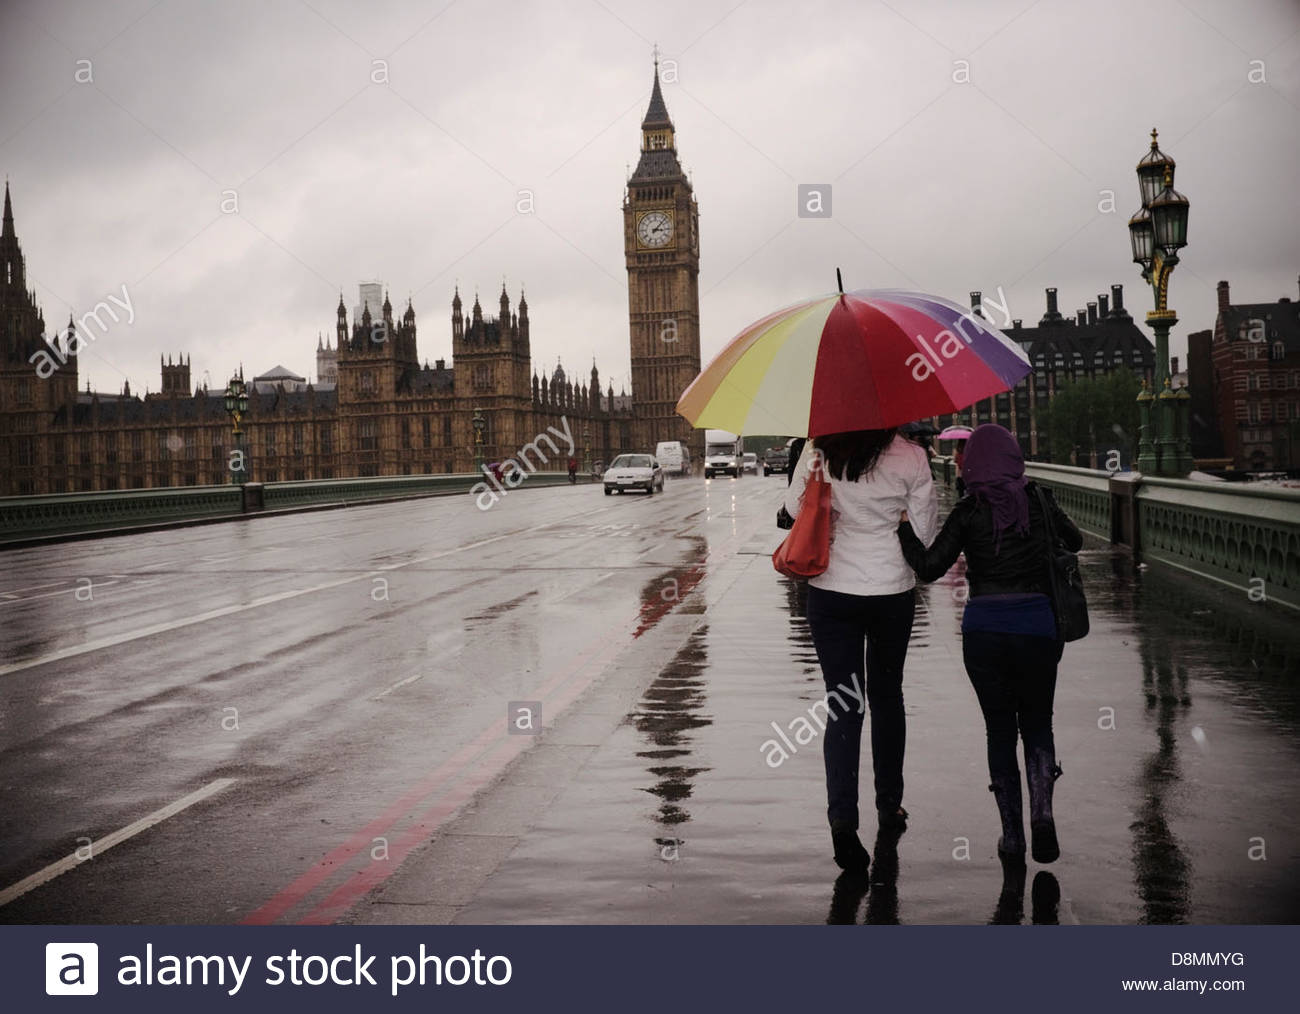 A rainy day in London, on Westminster Bridge. London, UK. - Stock Image